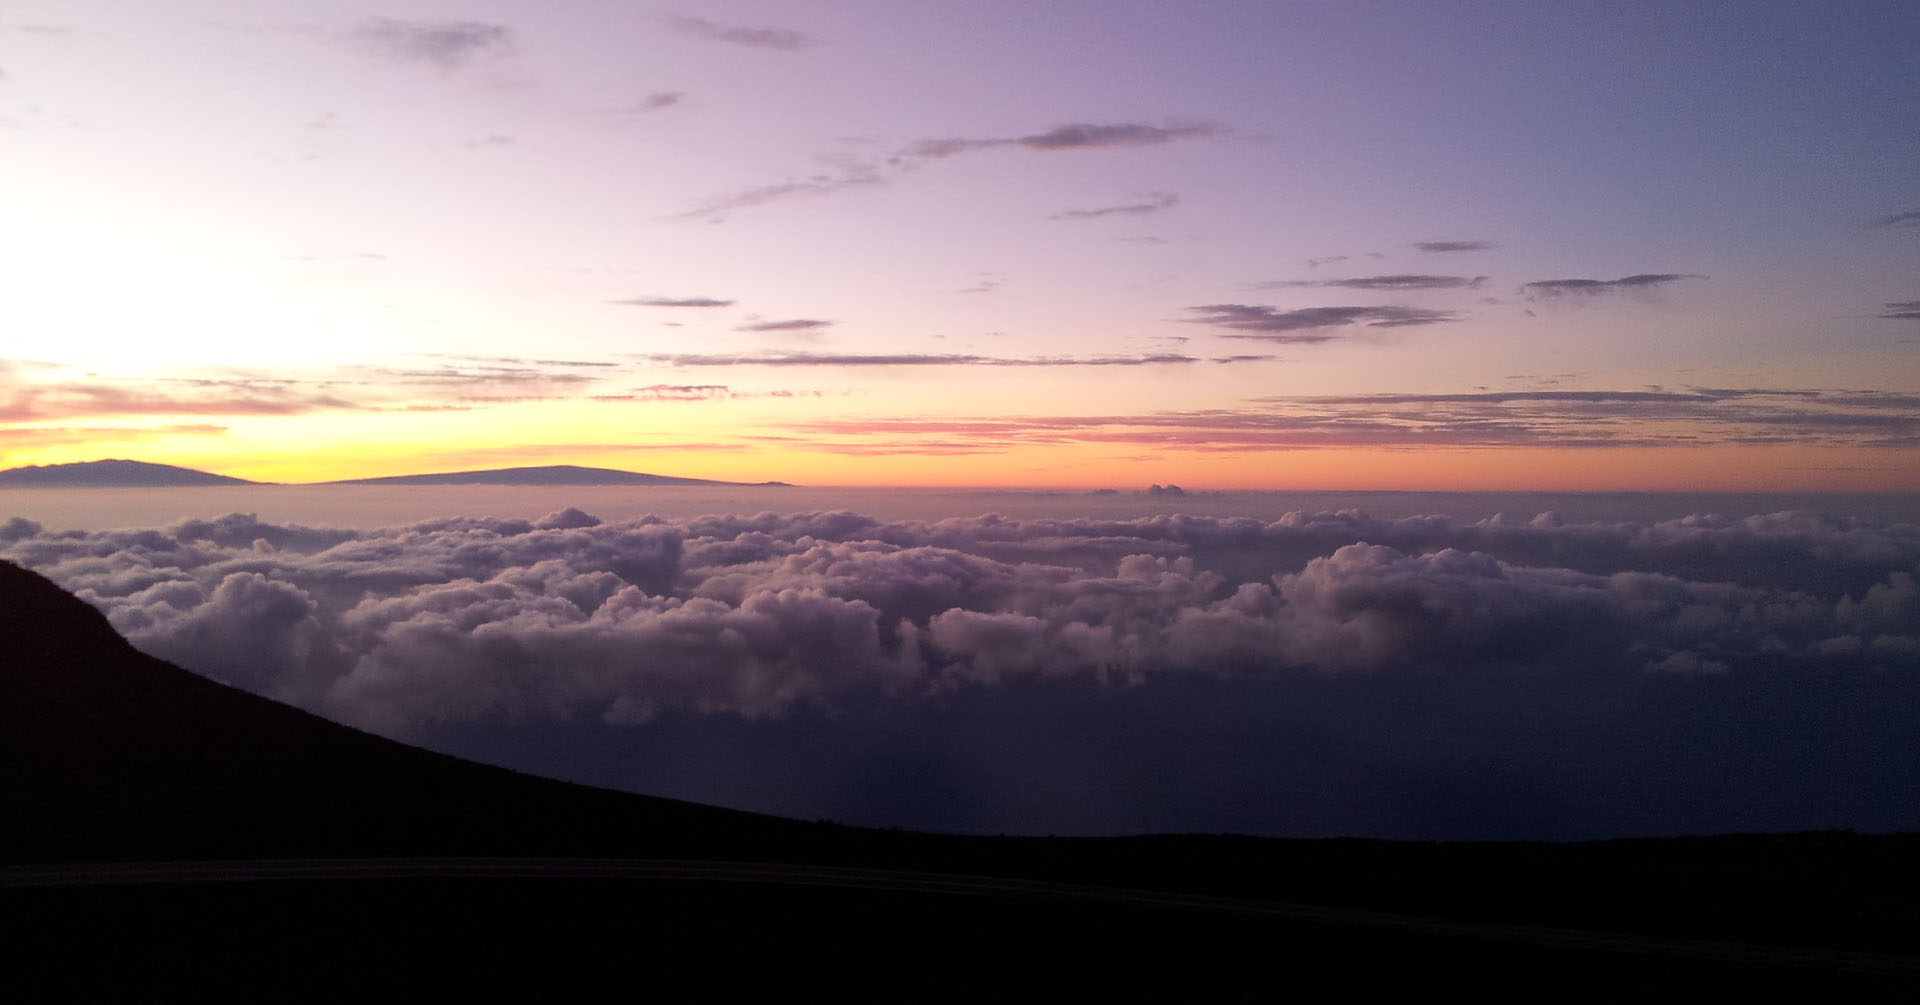 Sunset over the clouds in Hawaii